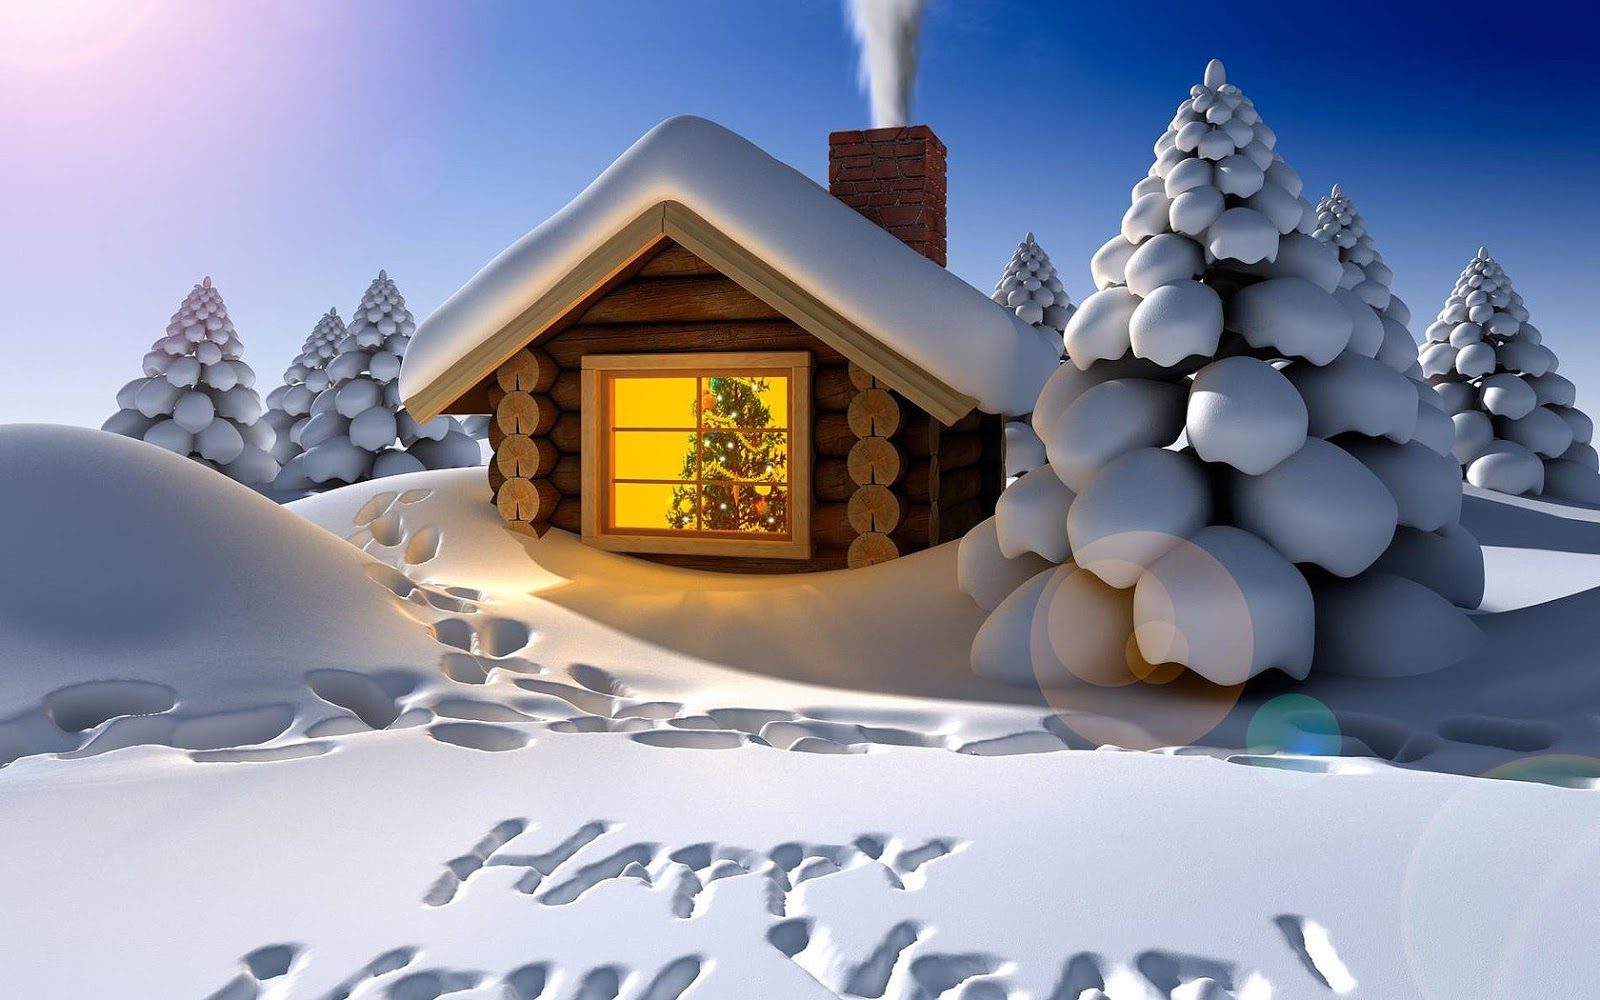 3d winter wallpaper met een huisje en de tekst happy new year in de